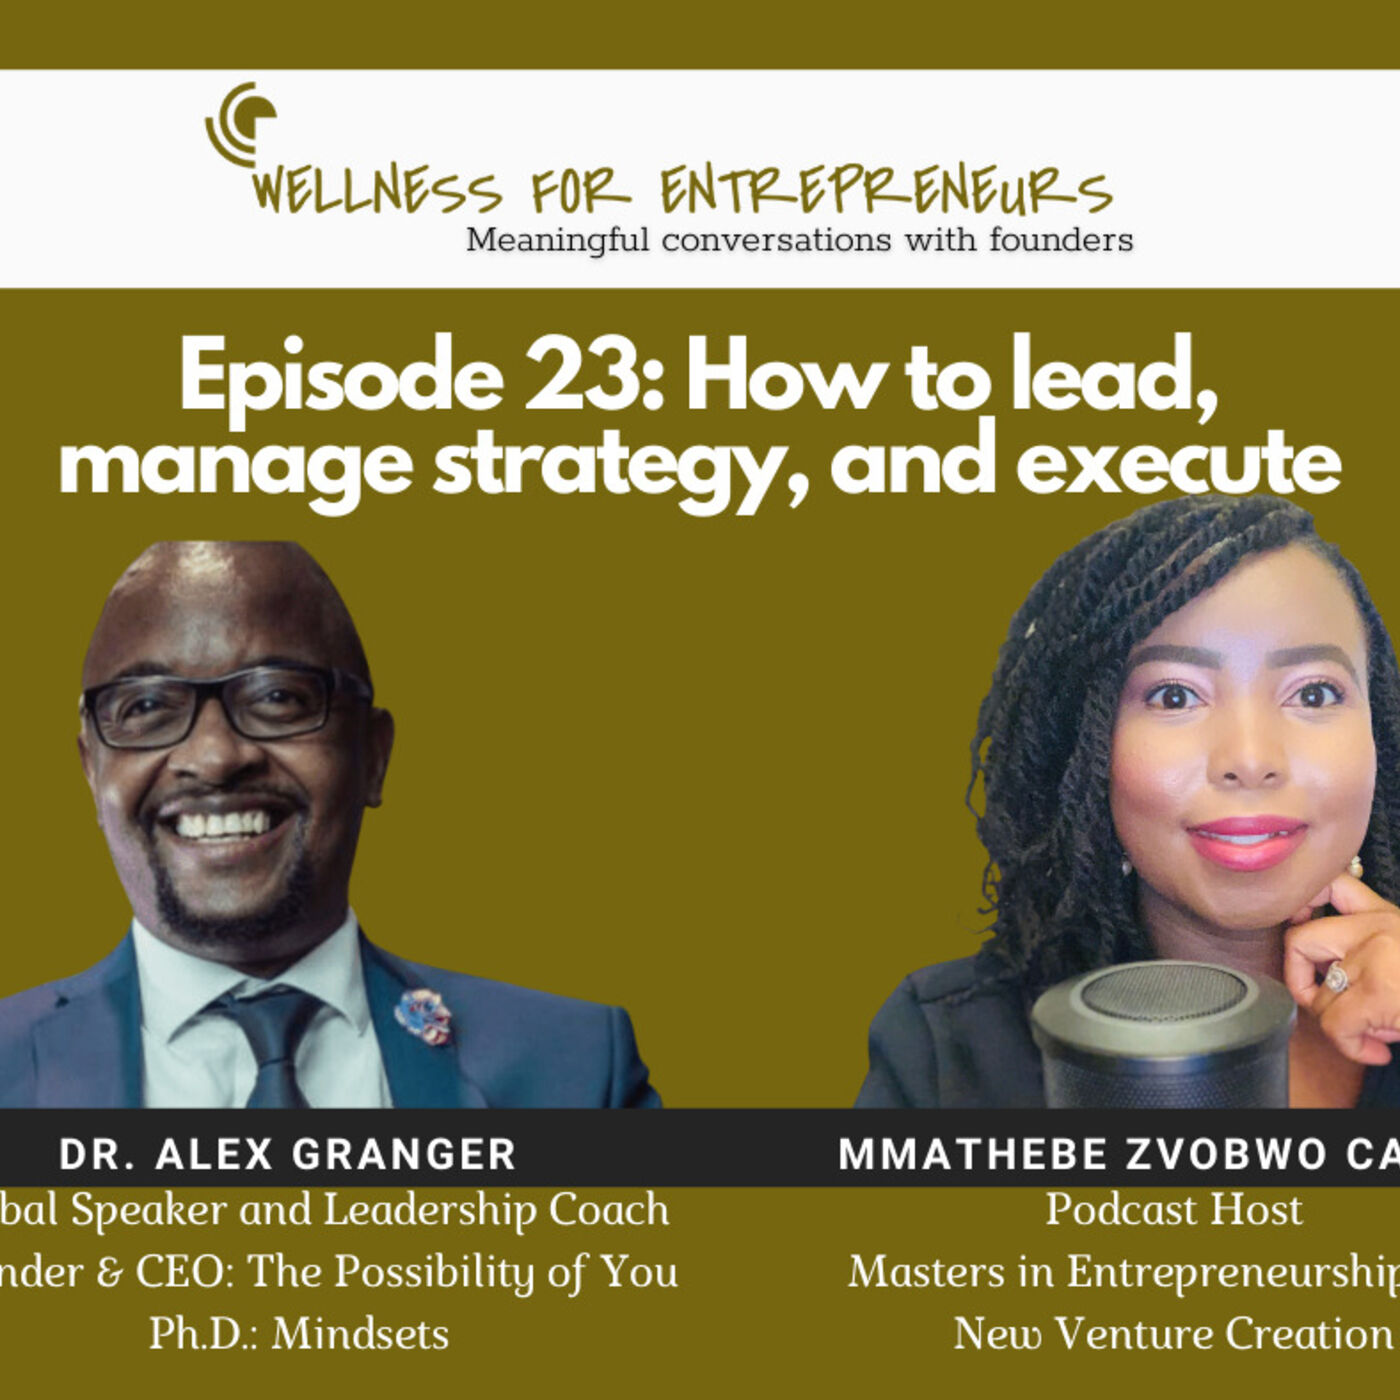 Episode 23: How to lead, manage strategy, and execute, with Dr. Alex Granger